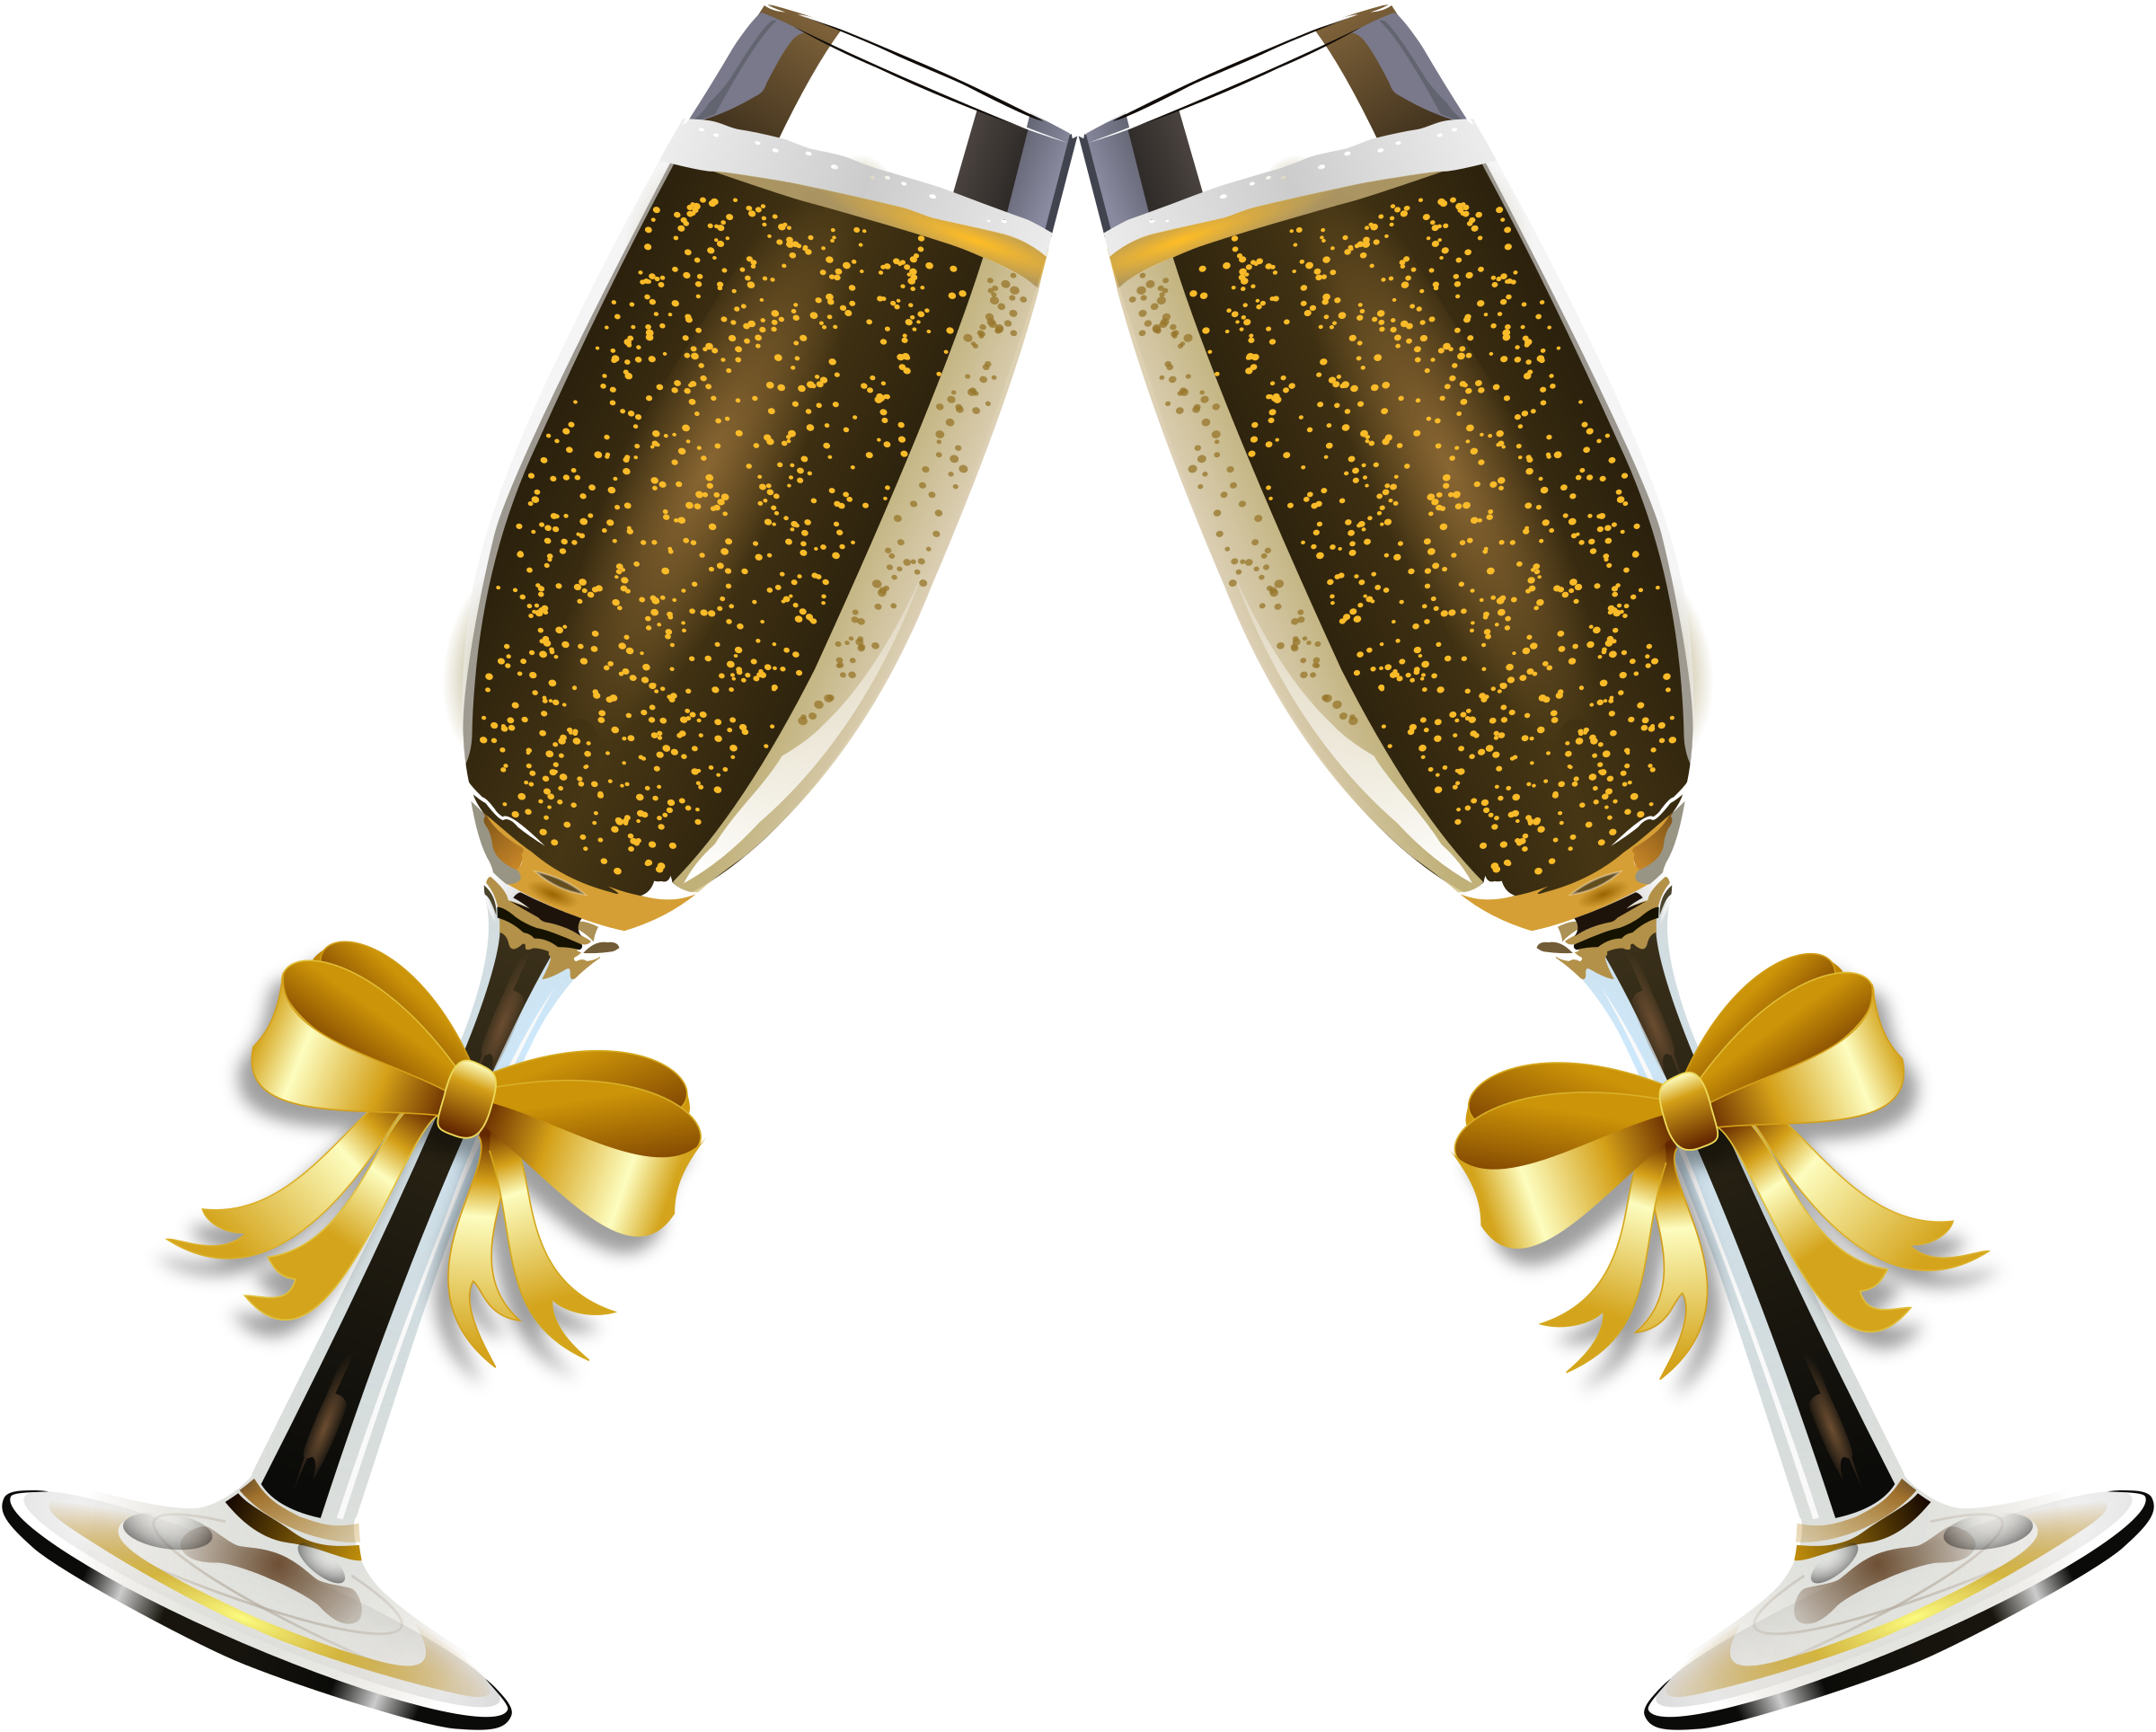 Clipart Champagne Glass Remix 4-Clipart champagne glass remix 4-13